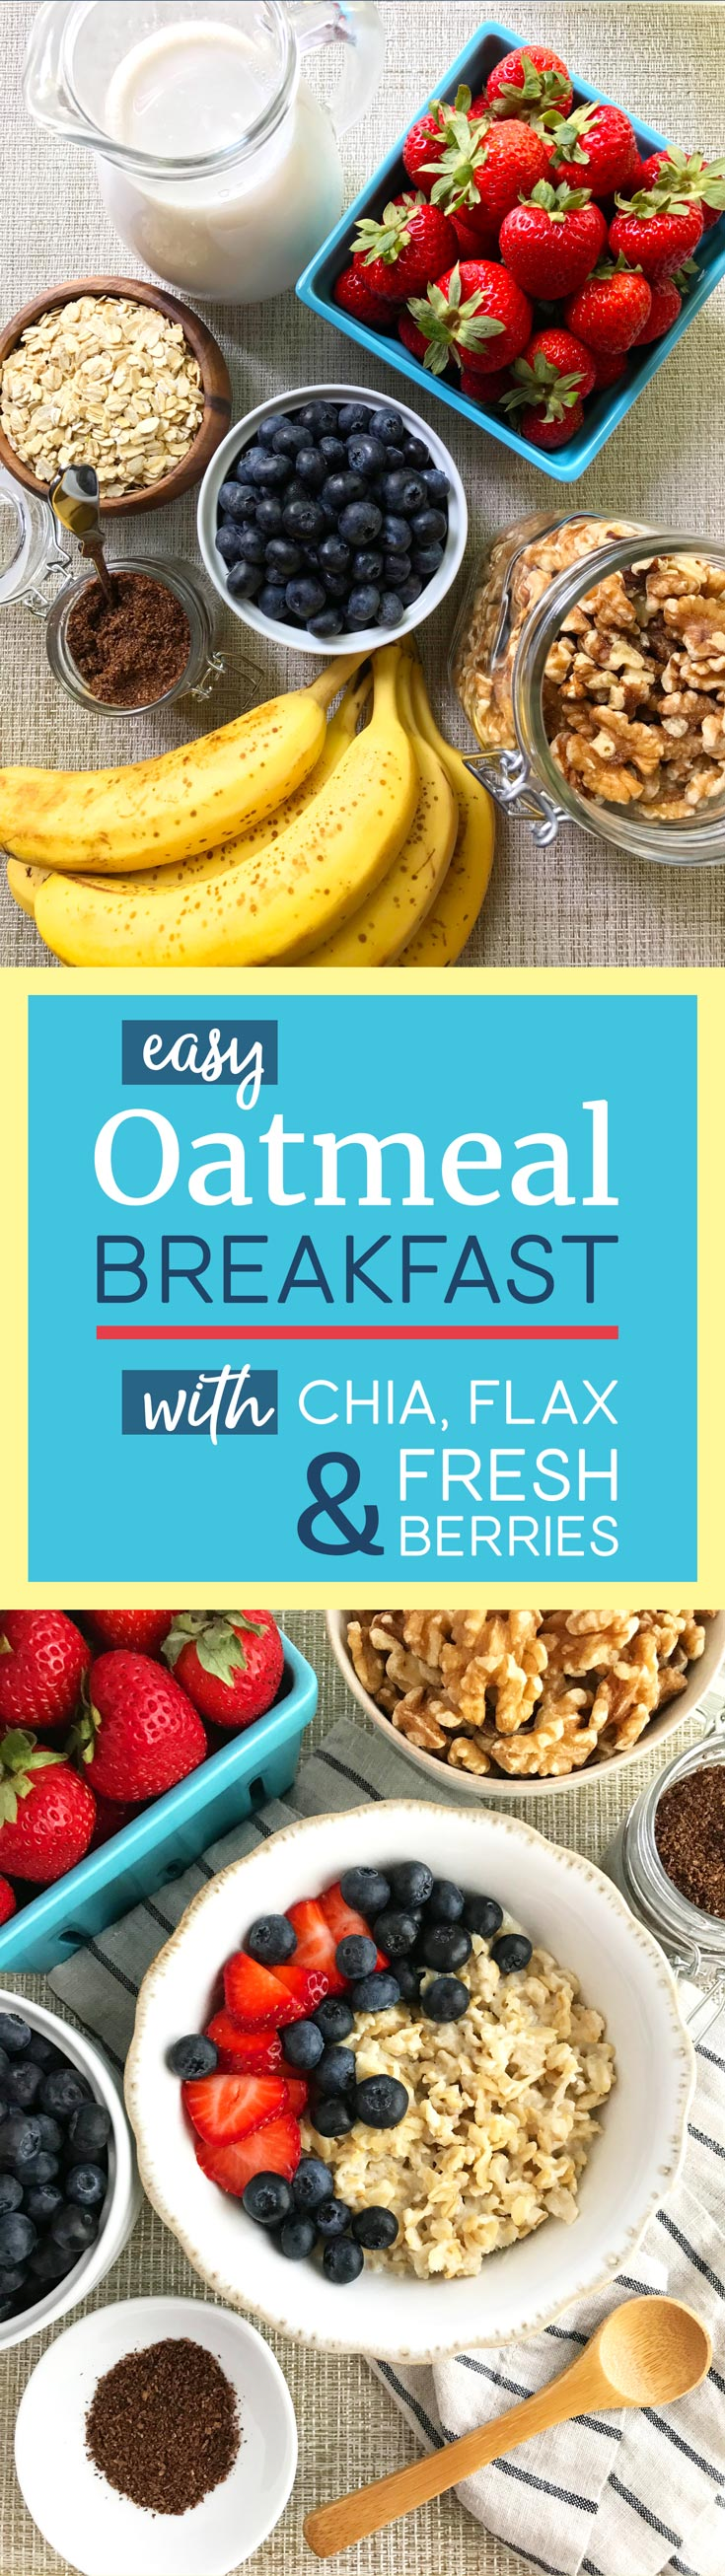 Reads Easy Oatmeal Breakfast with Chia Flax and Fresh Berries and shows oatmeal ingredients and cooked oatmeal in a bowl.